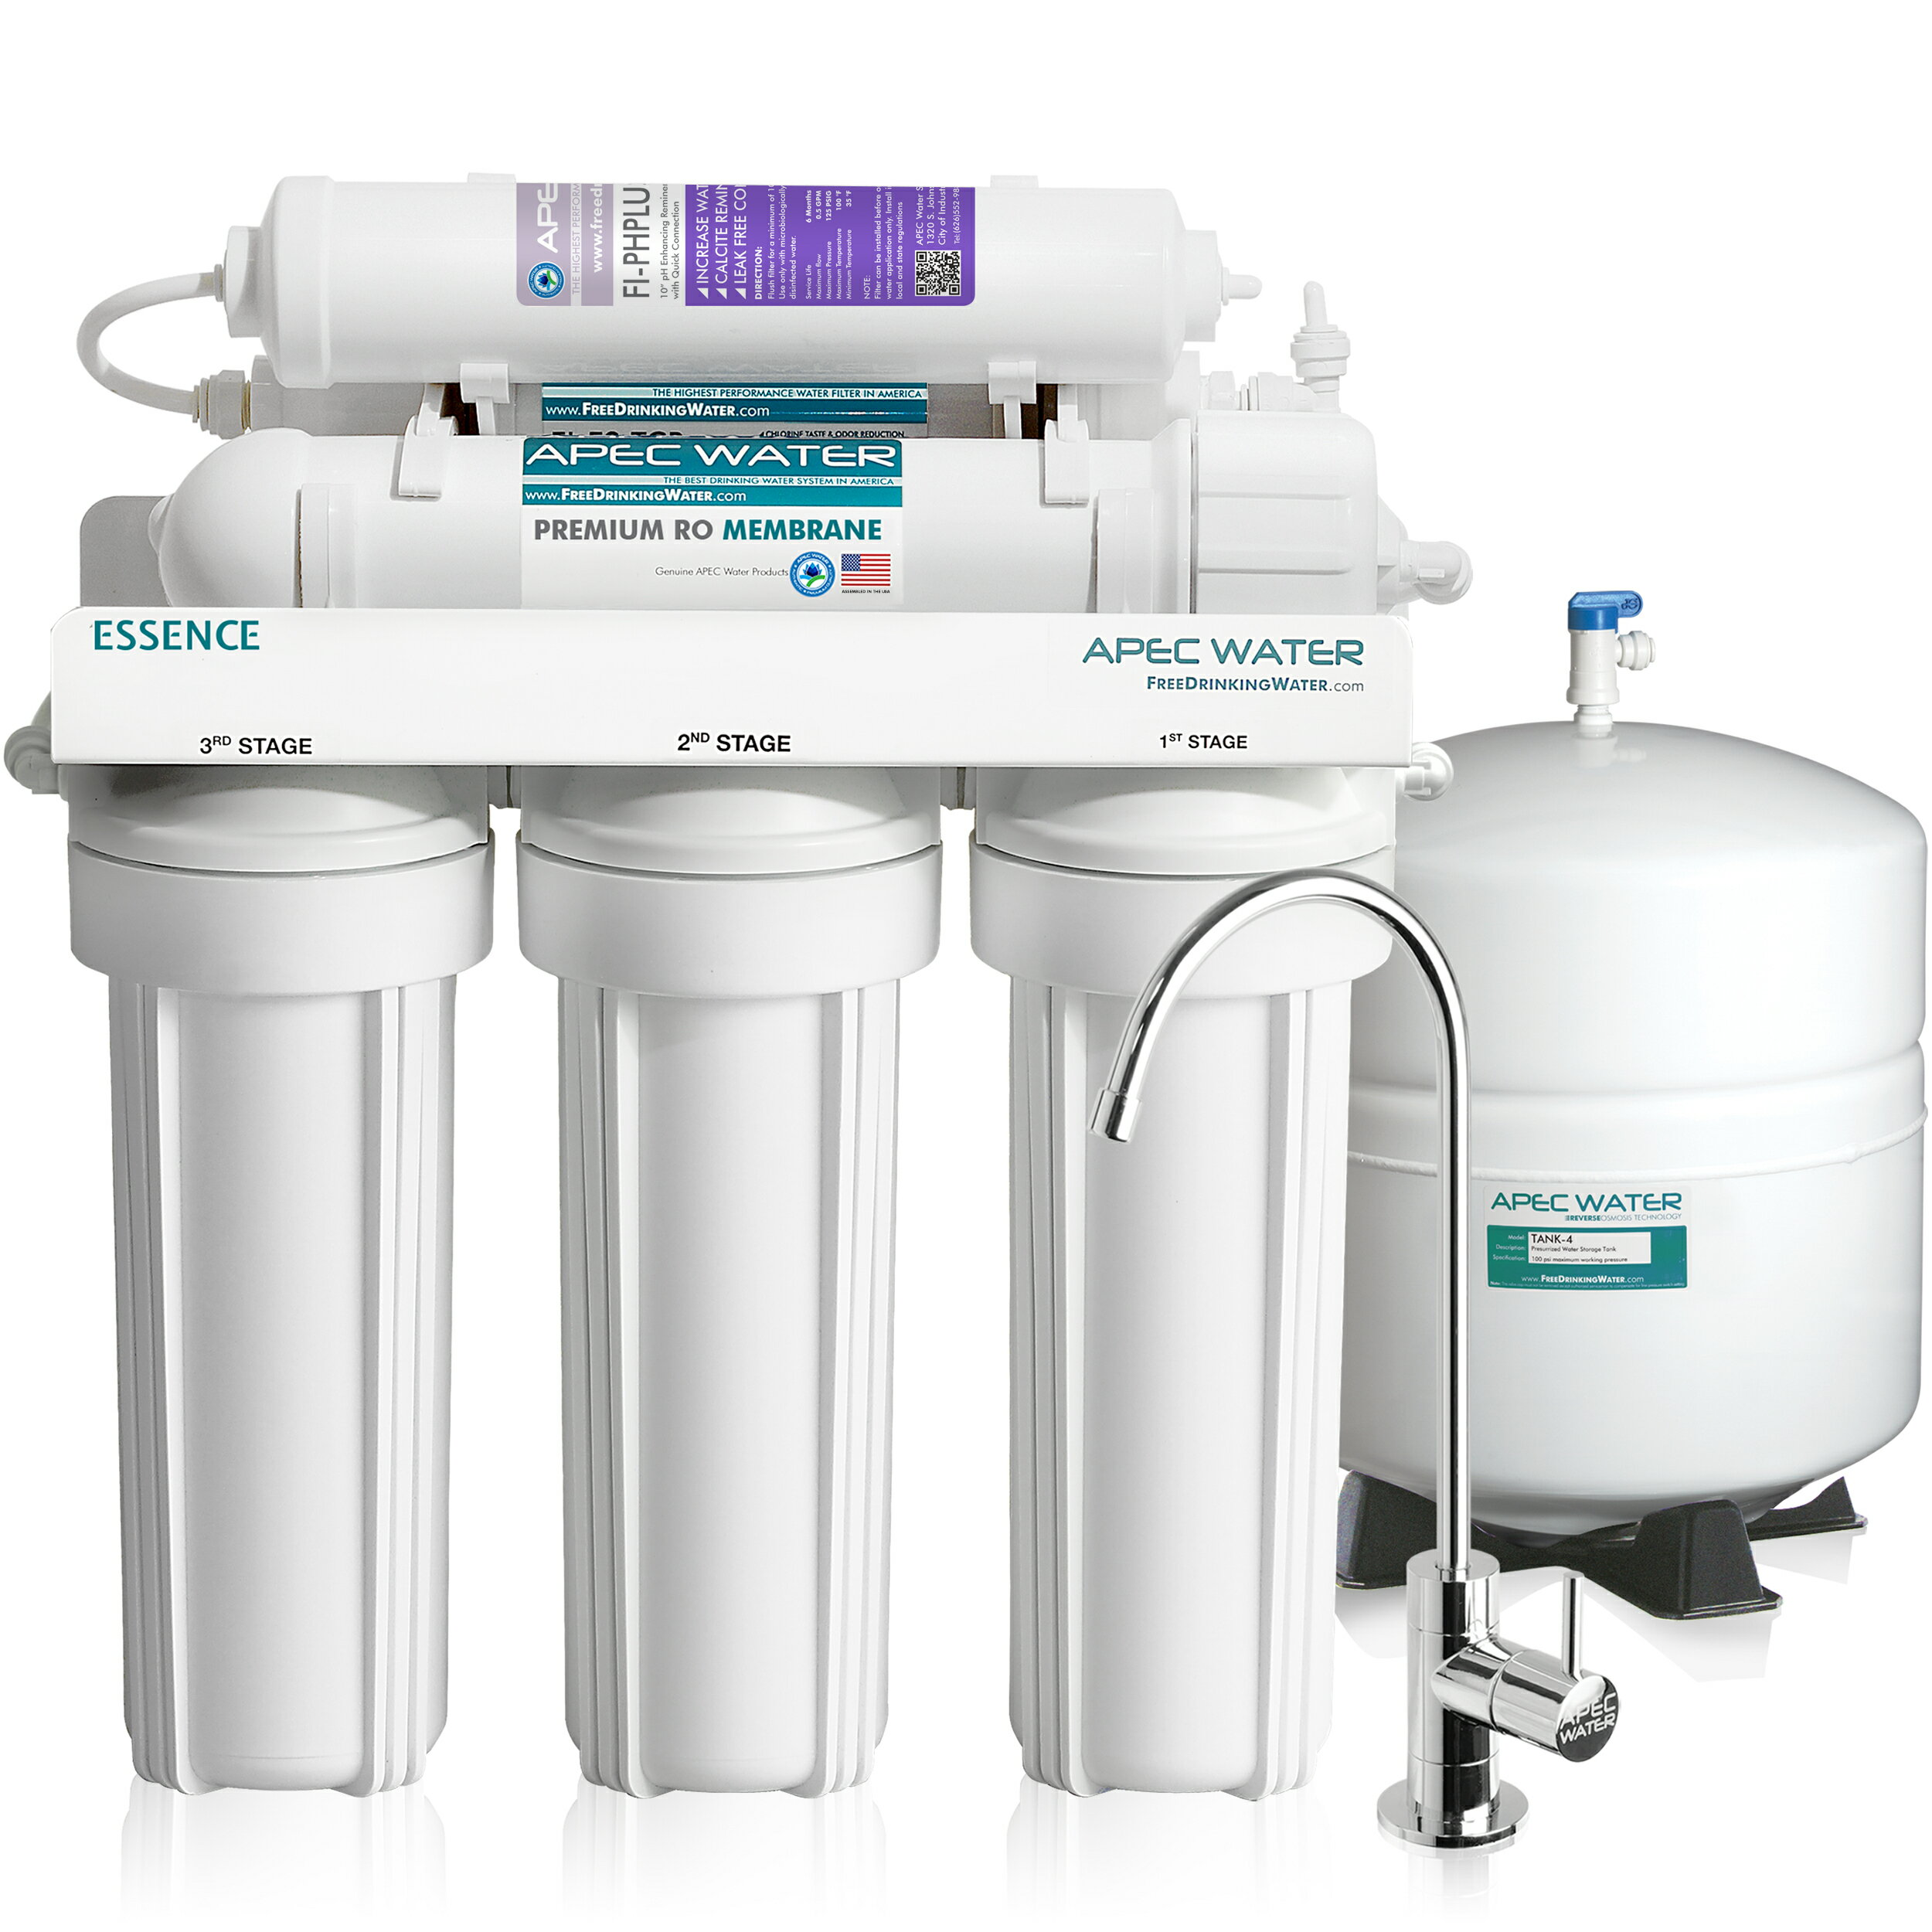 686b52d6738 APEC Top Tier Alkaline Mineral Ph+ Ultra Safe Reverse Osmosis Drinking  Water Filter System (ESSENCE